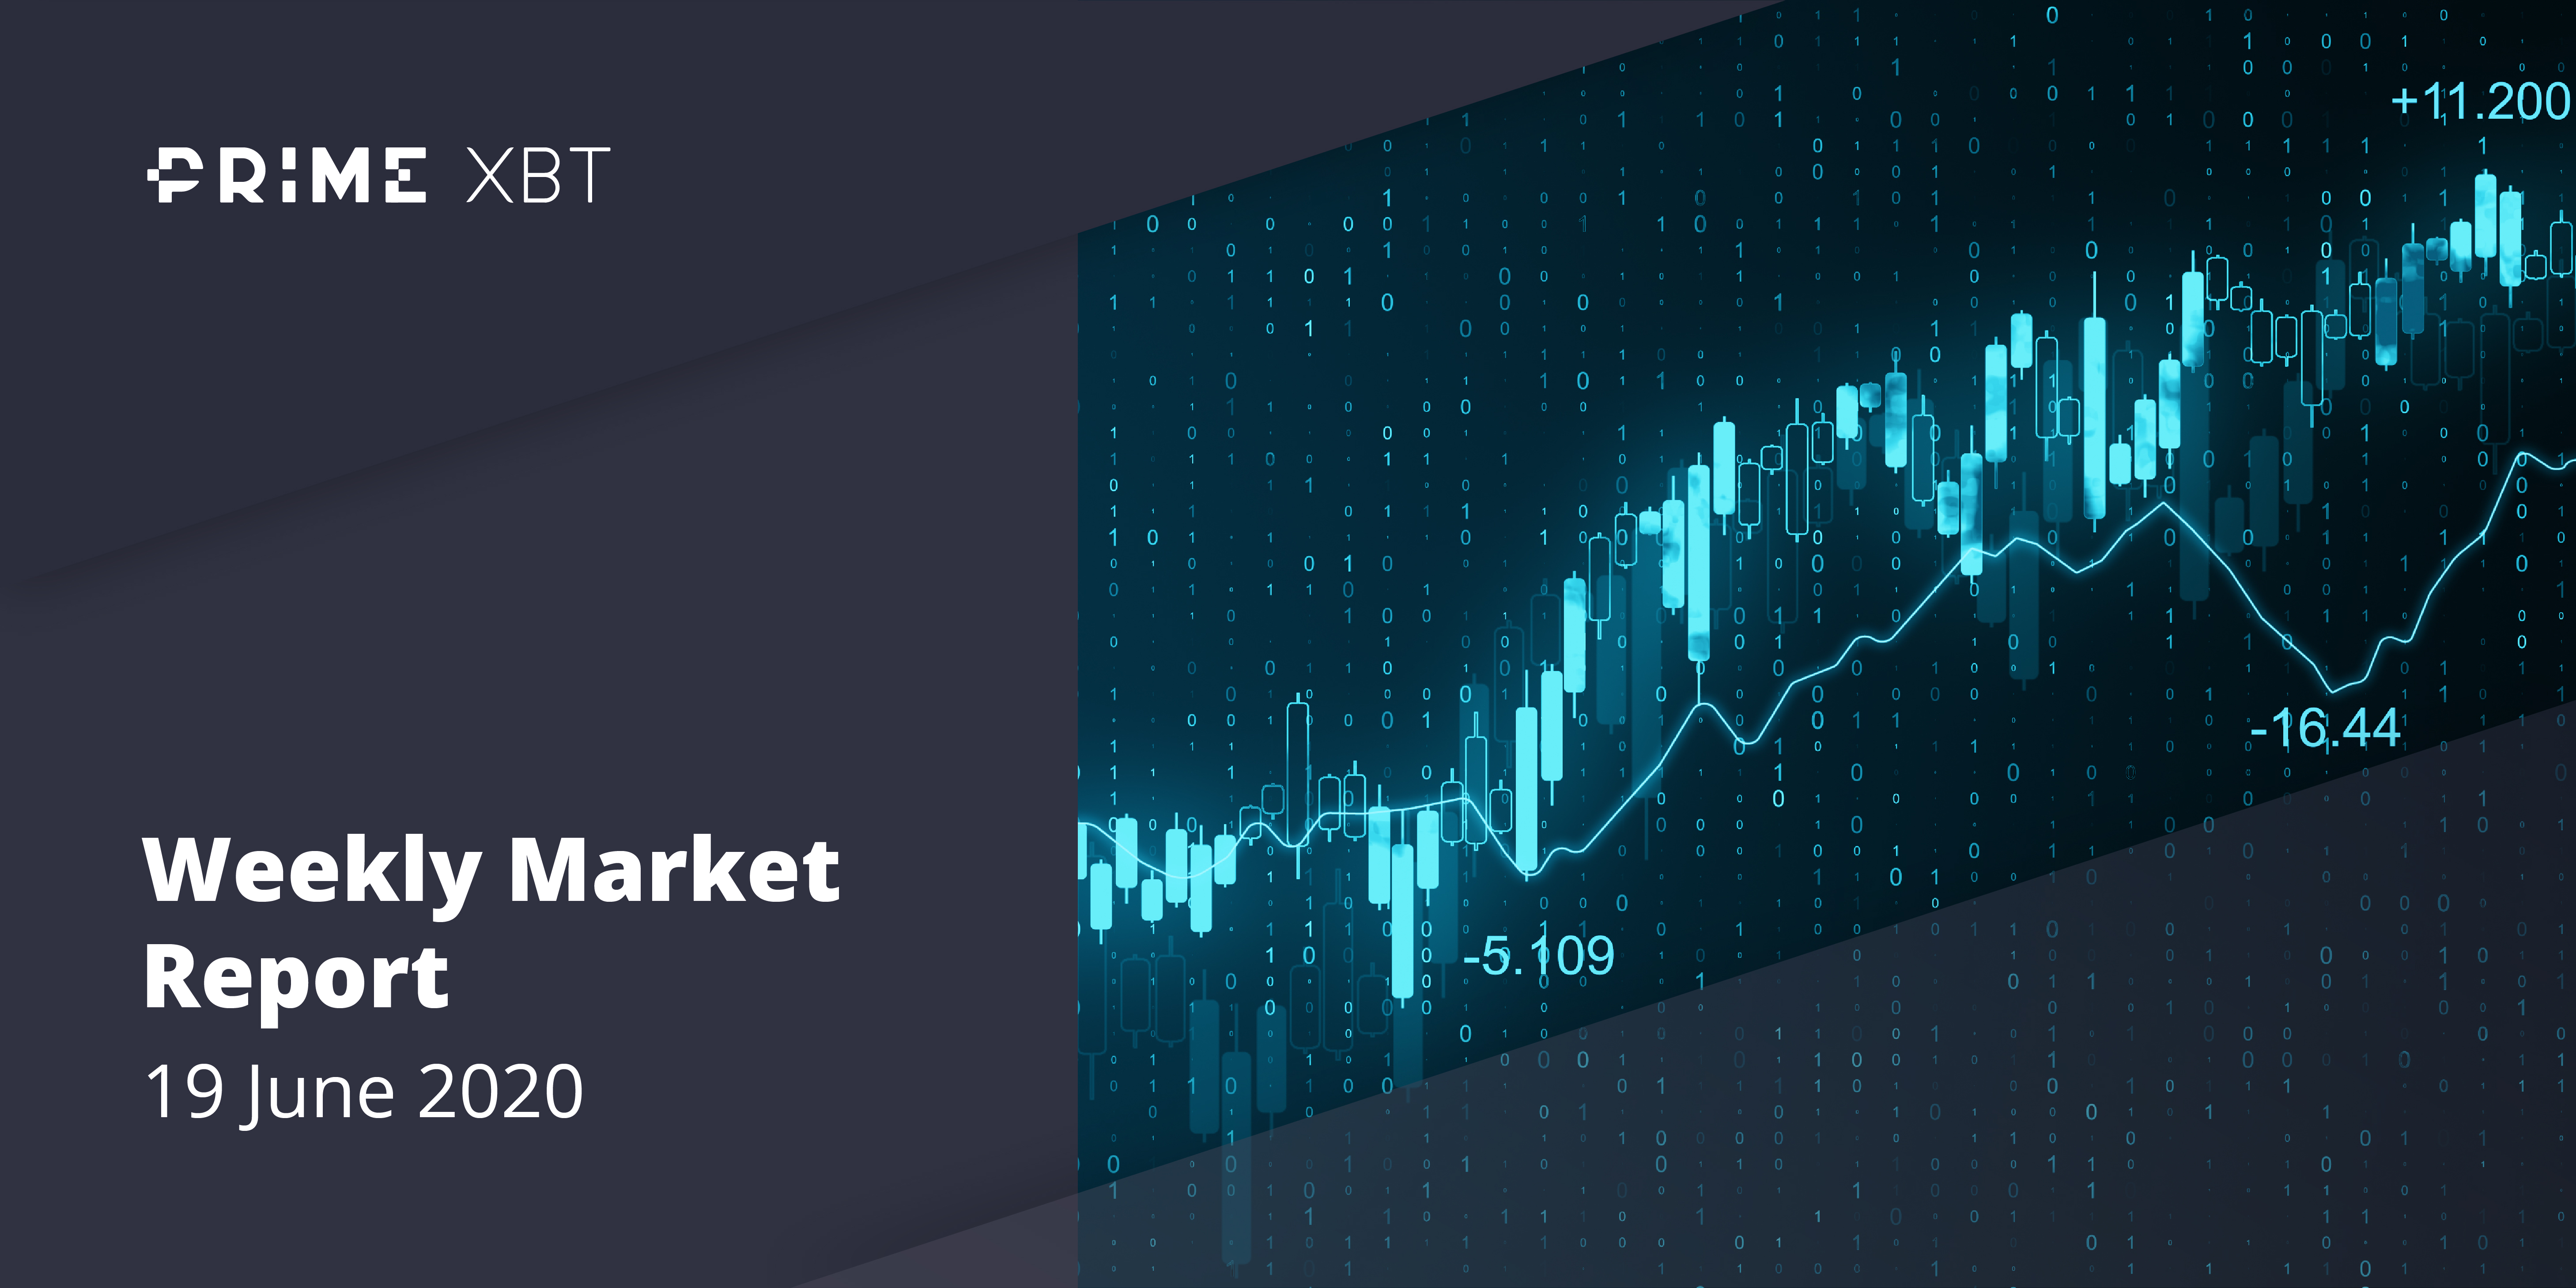 Crypto Market Report: Bitcoin Recovers From Midweek Dip to Trade Mostly Sideways While Small Cap Coins Continue Successful Month's Growth - 19.06.20